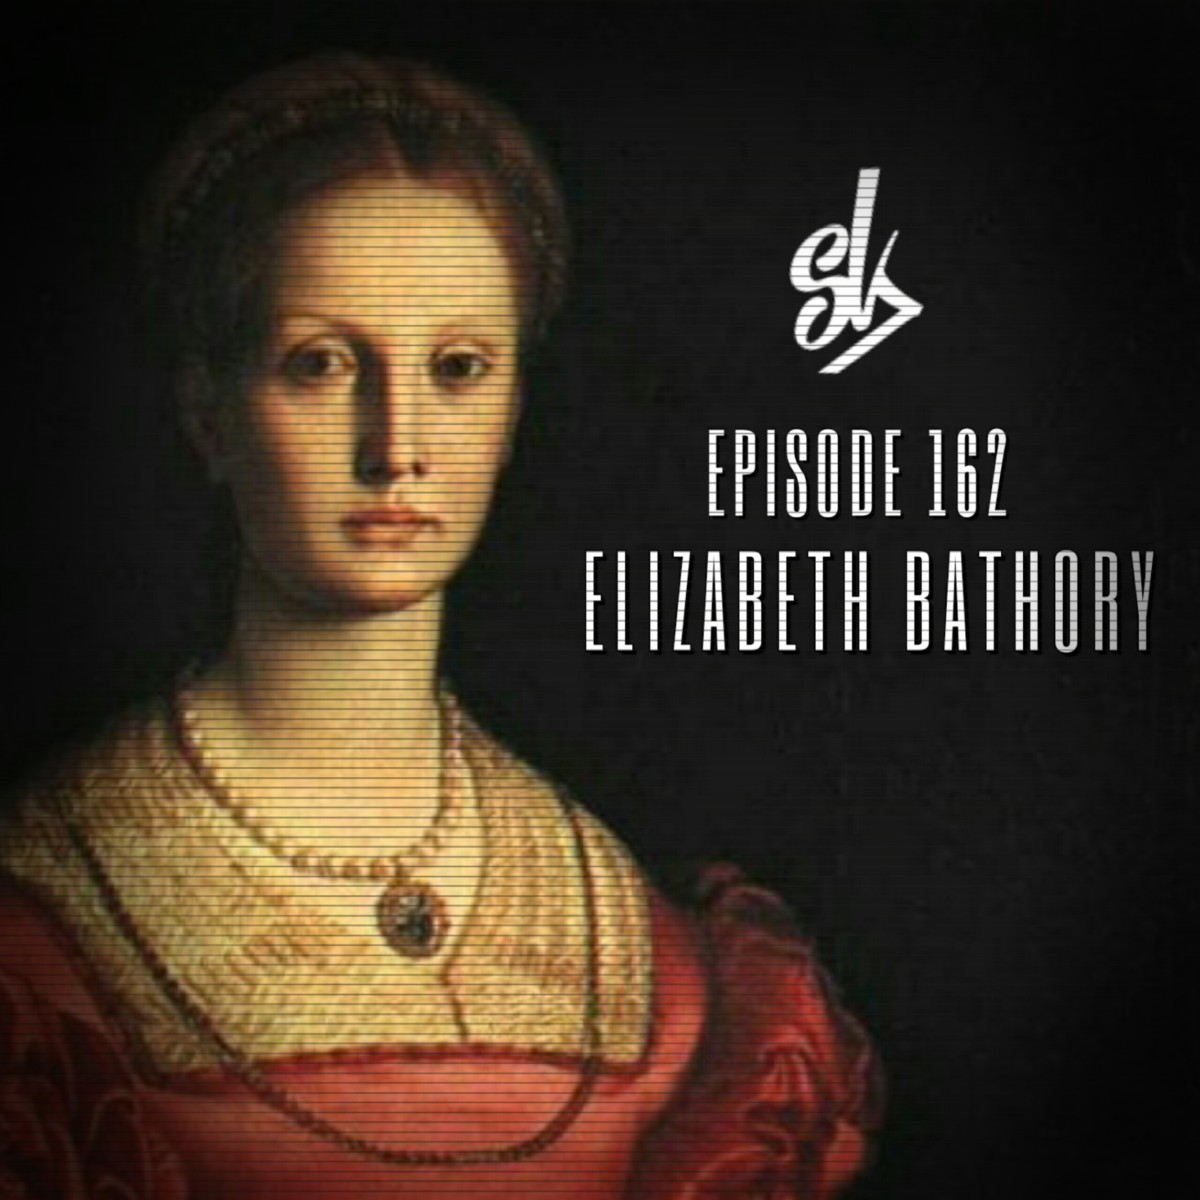 sofa king podcast leather and fabric in same room episode 162 elizabeth bathory the blood countess